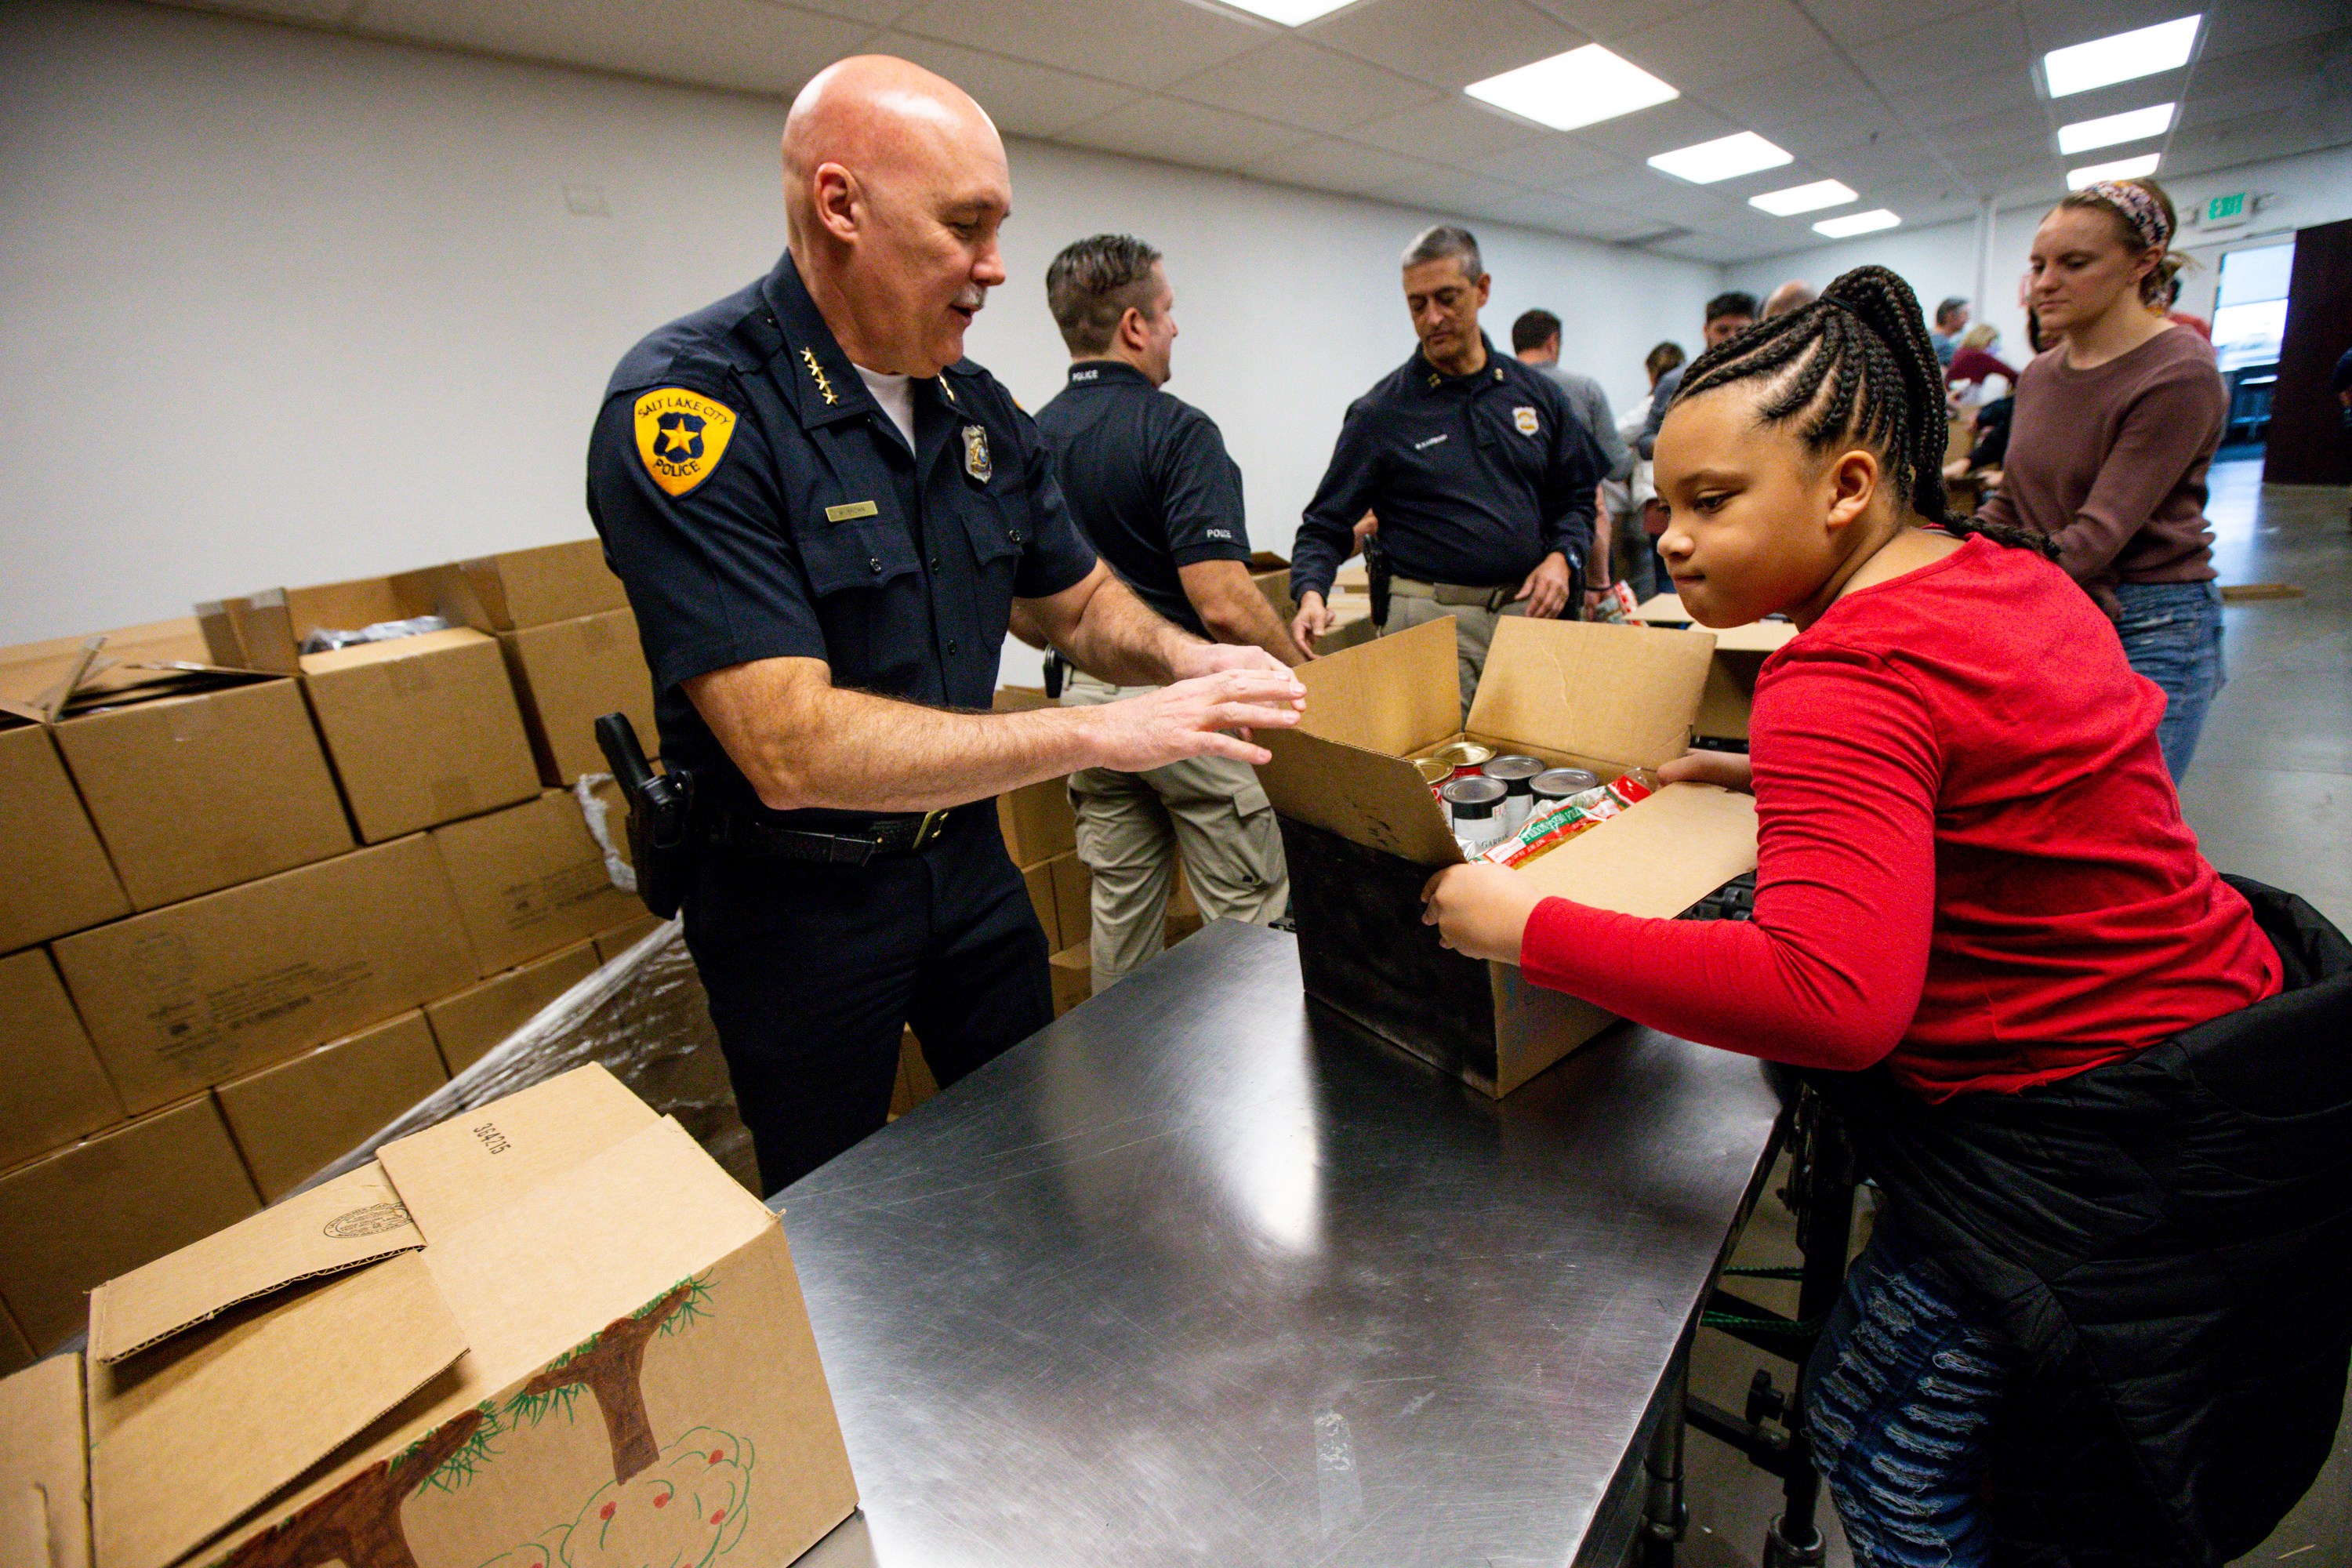 Salt Lake Police Chief Mike Brown and KaNiyah Lynch help fill boxes of food during the Martin Luther King Jr. Day of Service at the Utah Food Bank in South Salt Lake on Monday, Jan. 20, 2020. The volunteers helped fill 432 boxes, which will later be distributed to homebound seniors, homeless persons and others in need.